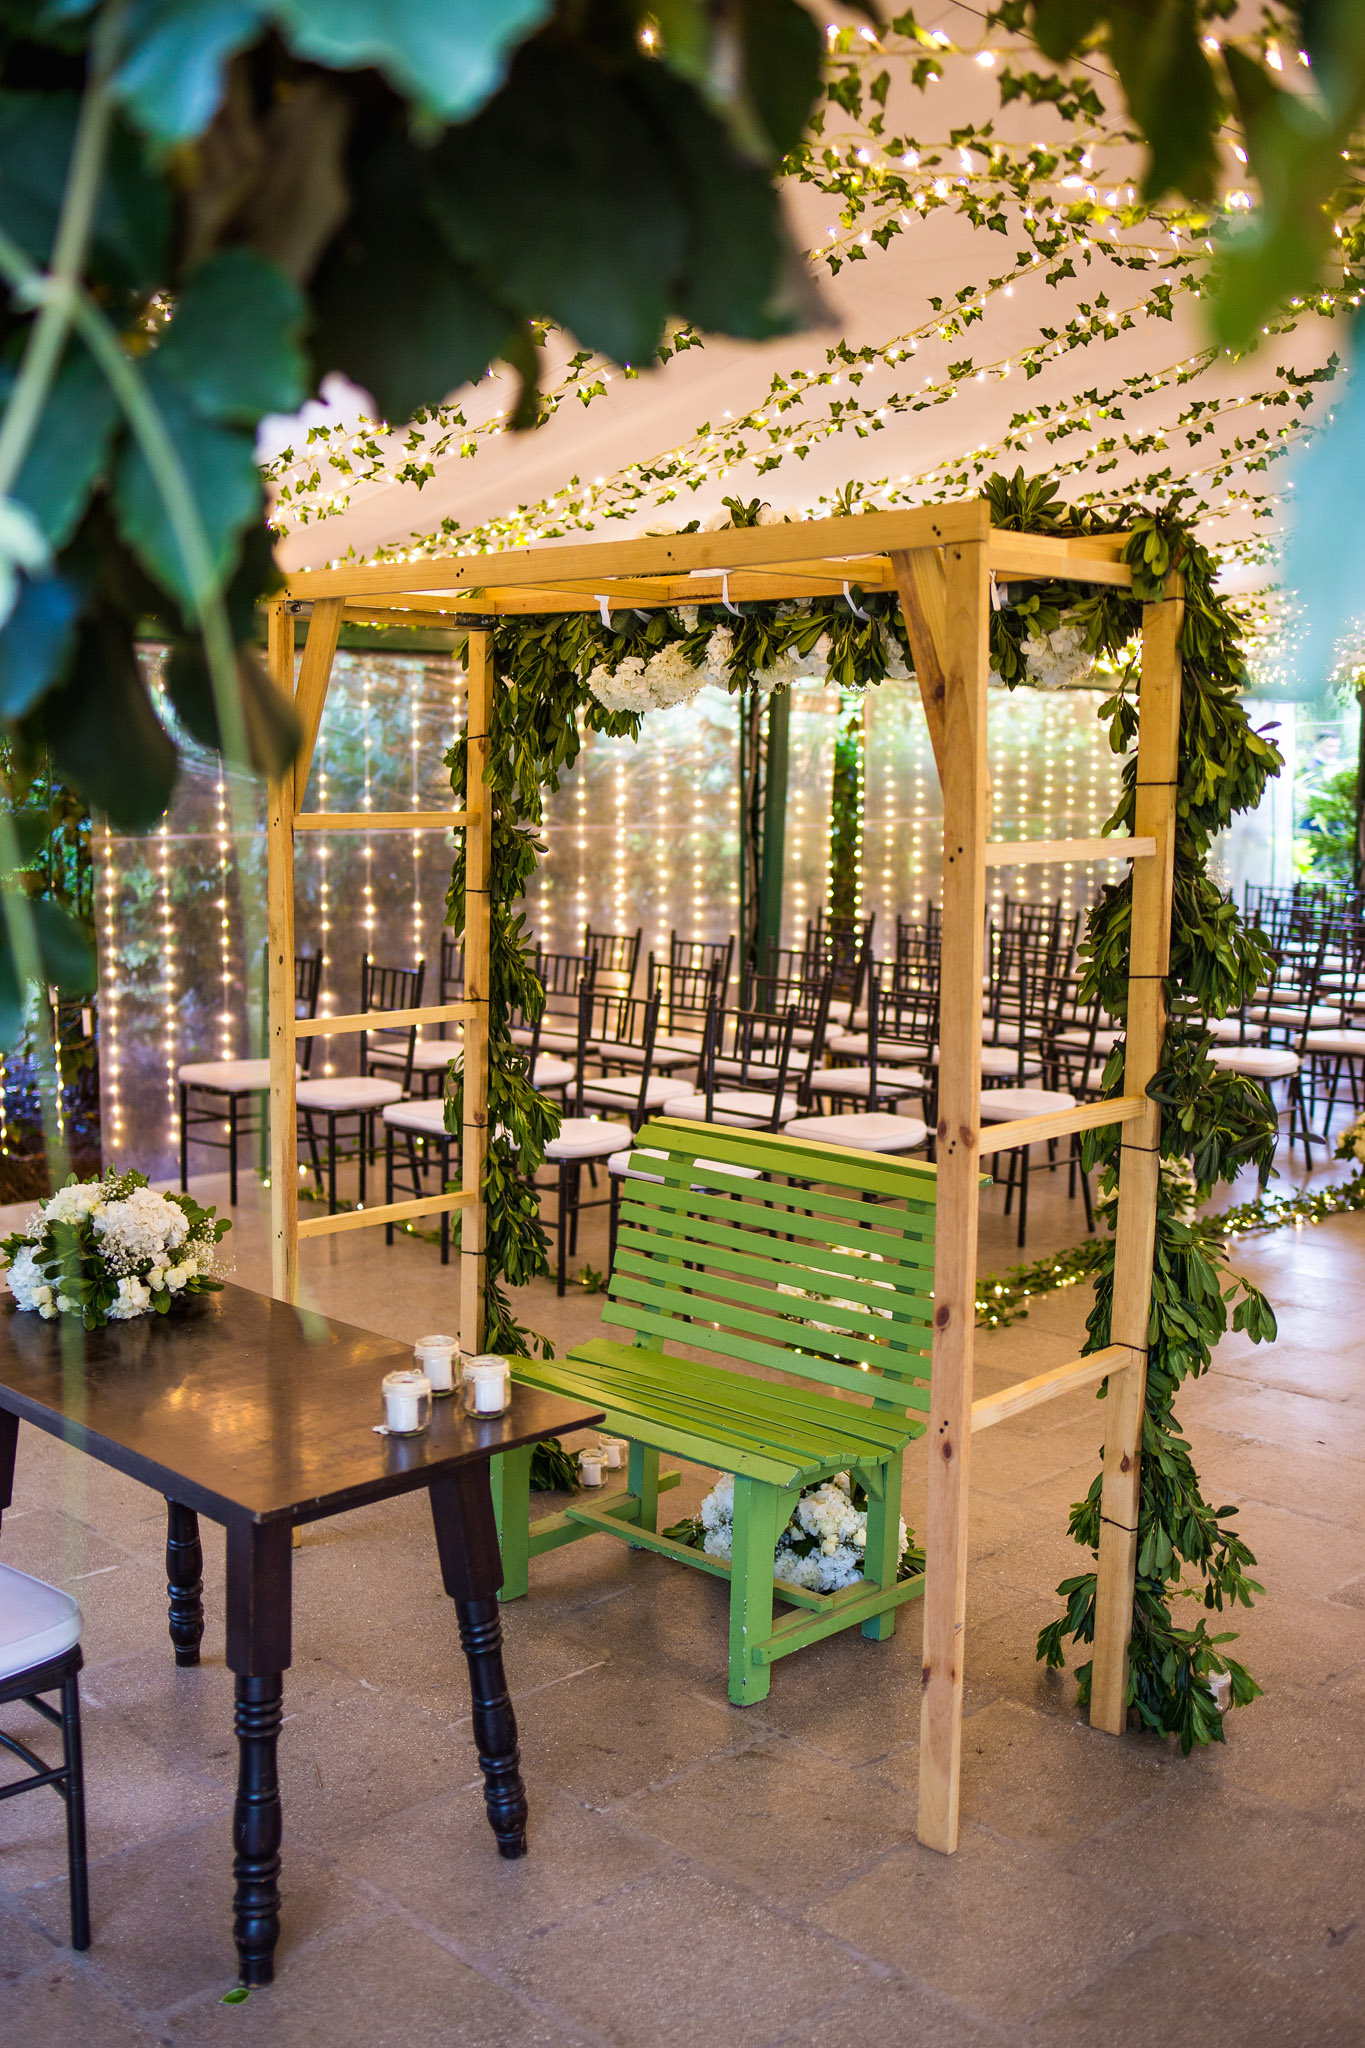 wedding-travellers-destination-wedding-photography-colombia-medellin-chuscalito-bench-romantic